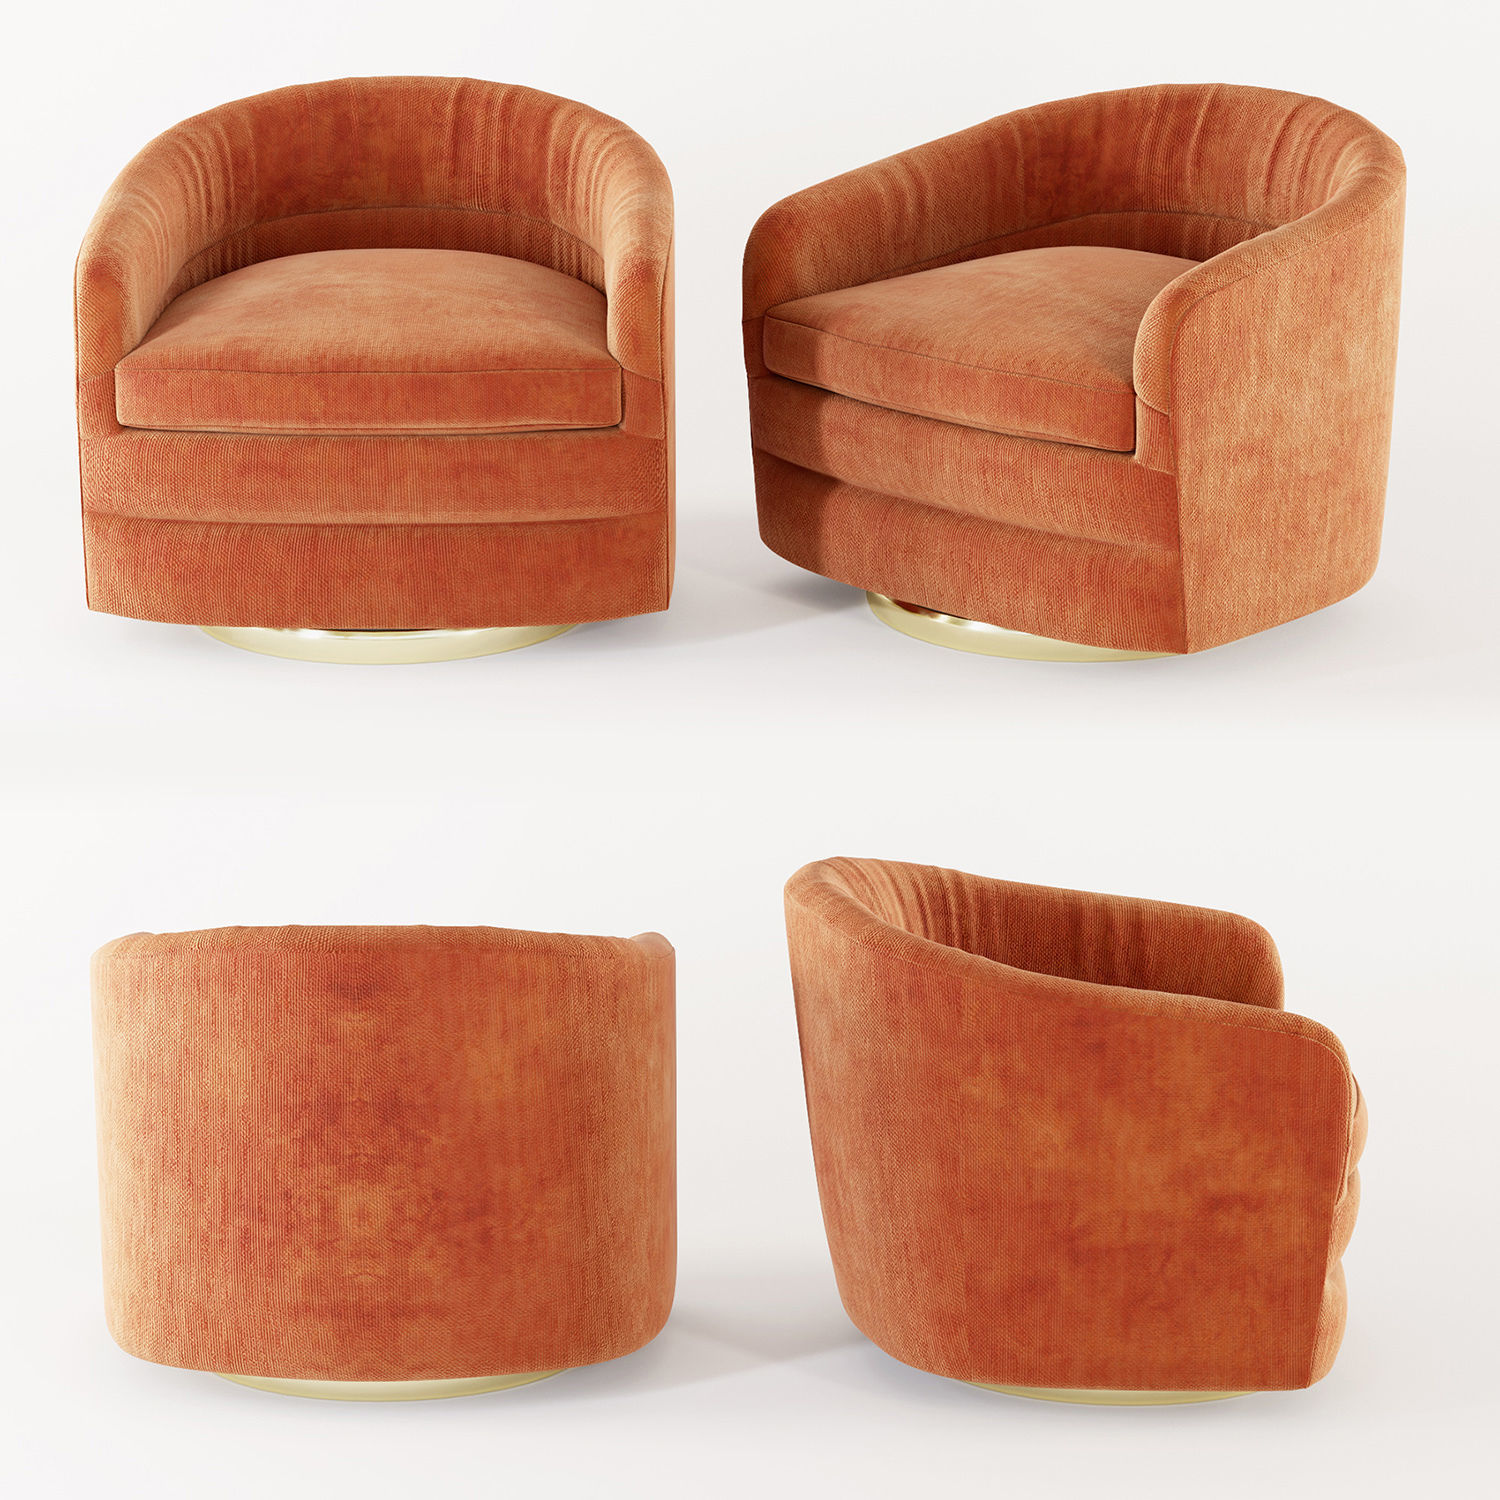 Tub Chairs Milo Baughman Swivel Tub Chairs For Thayer Coggin 3d Model